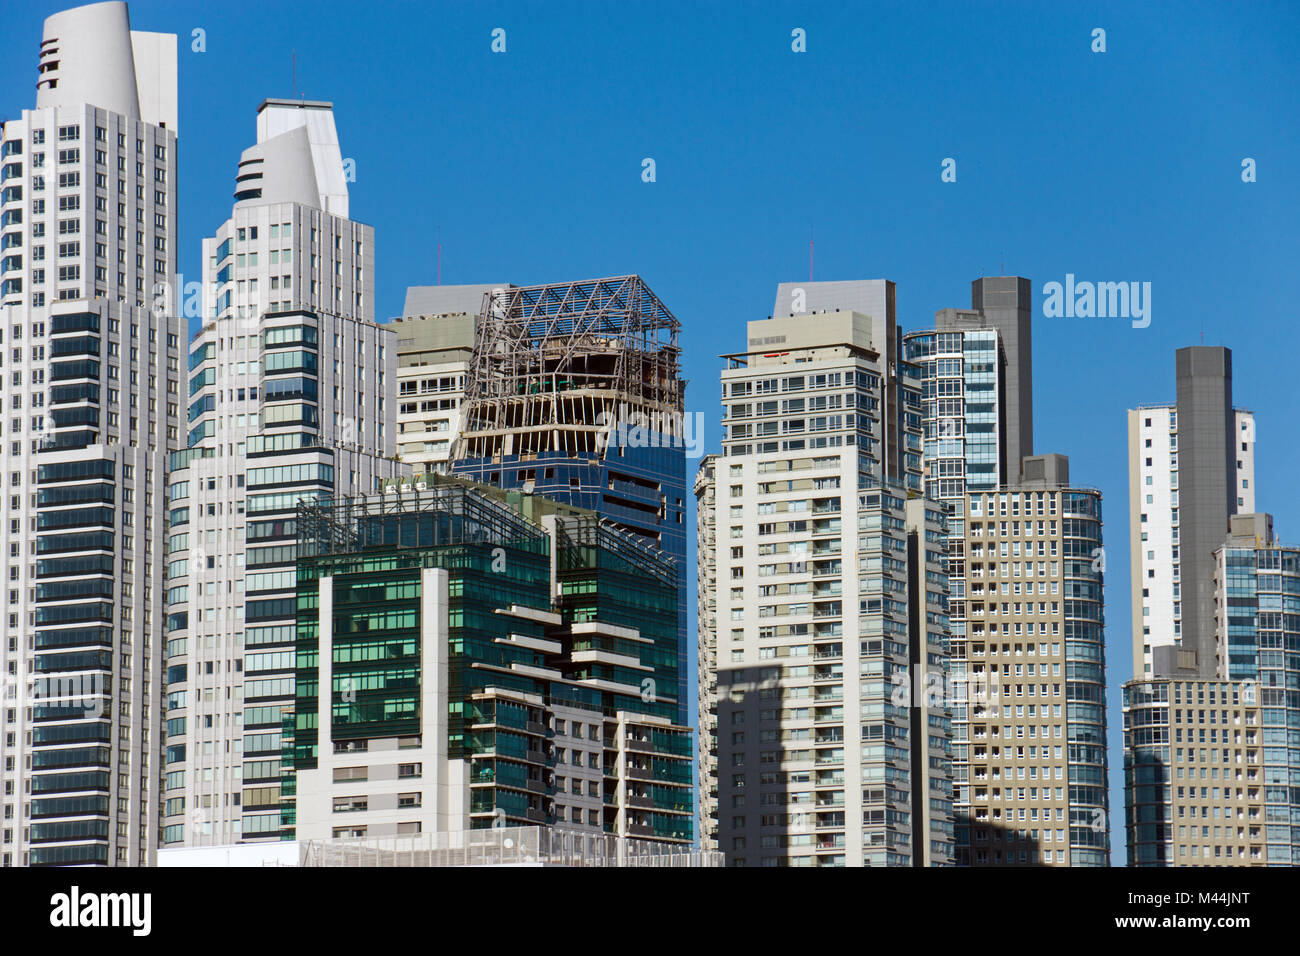 New skyscrapers in Puerto Madero, Buenos Aires, Ar Stock Photo